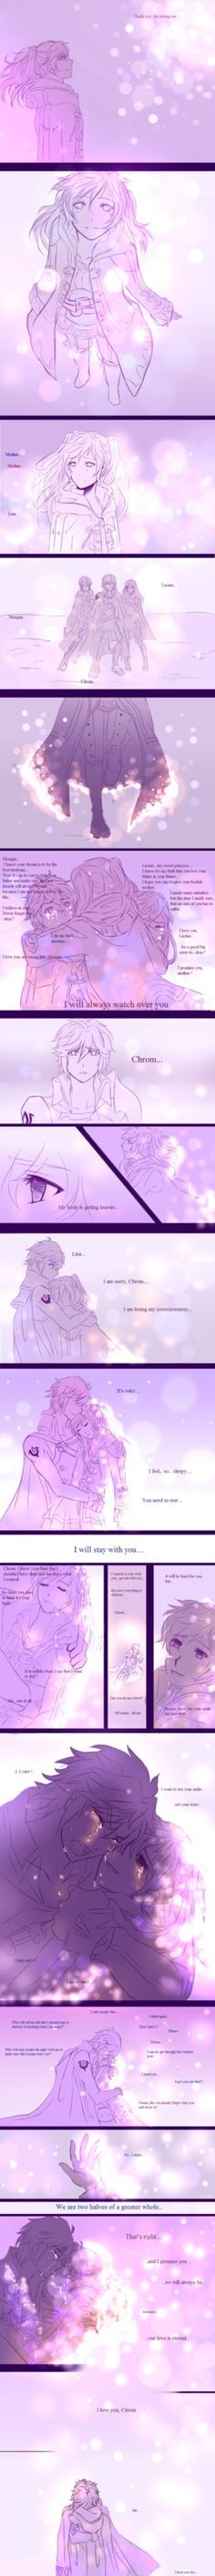 Fire Emblem Awakening: The End Part 3 by OwlLisa on DeviantArt